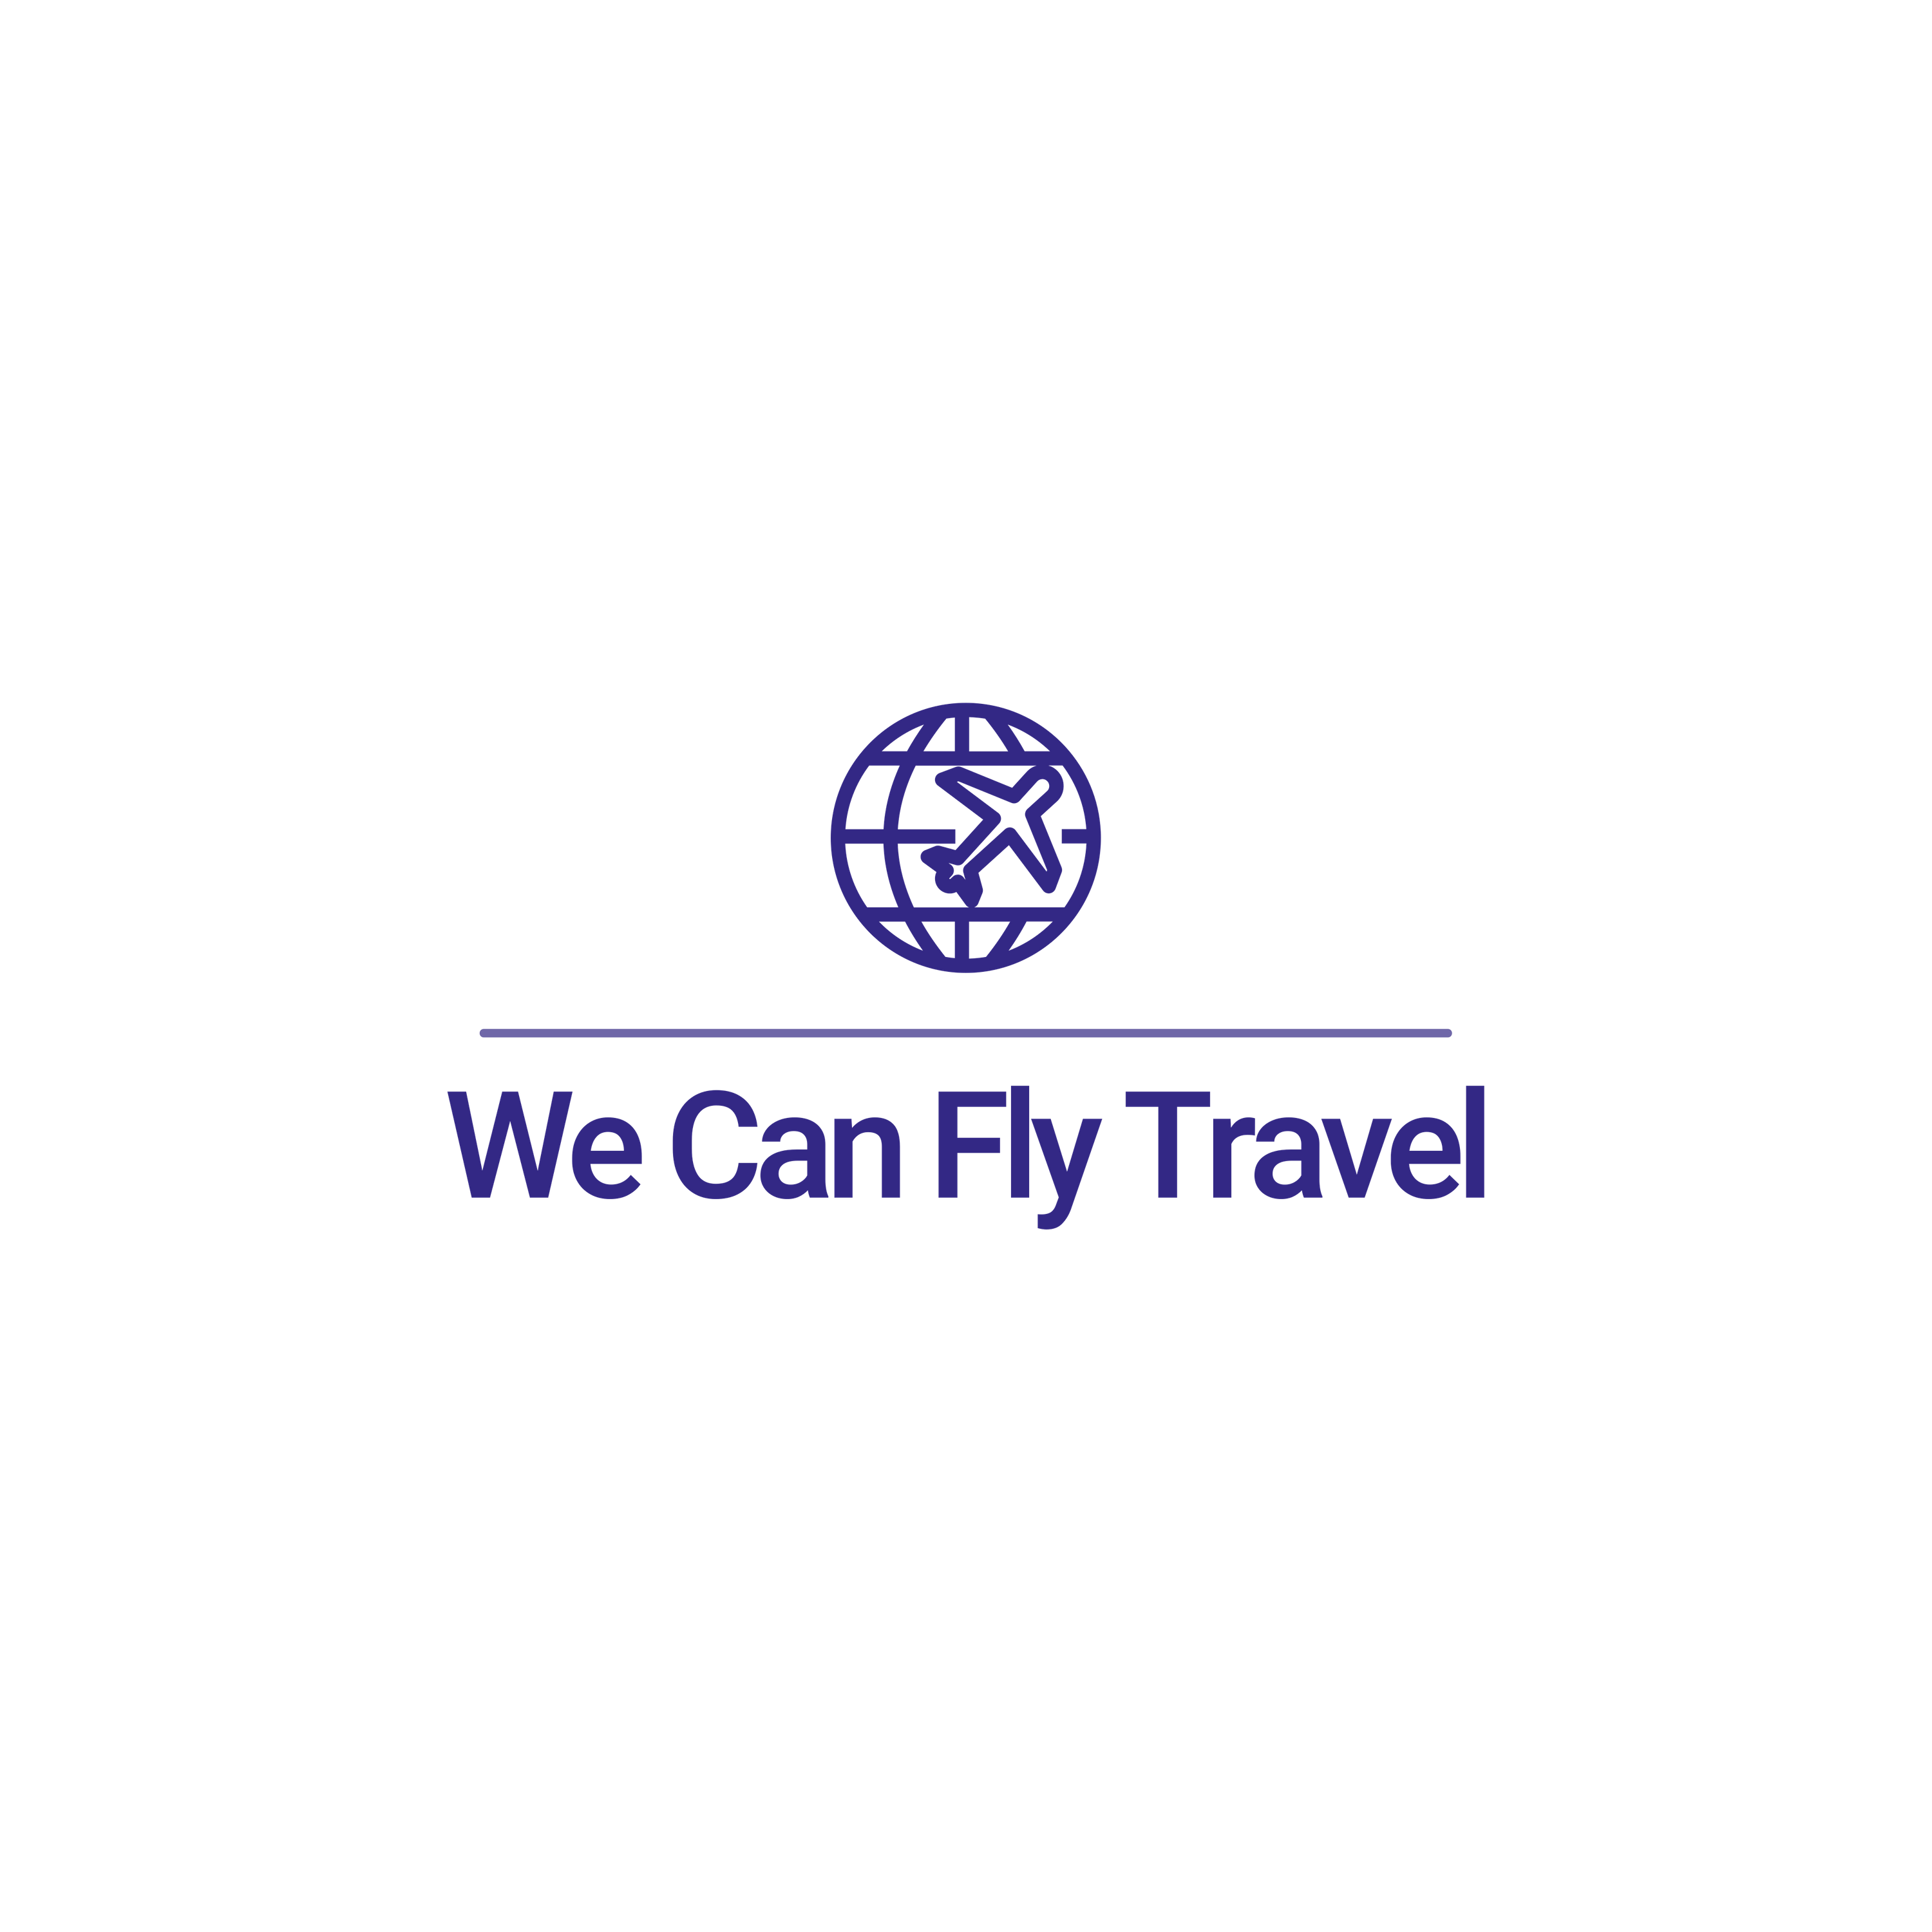 We Can Fly Travel